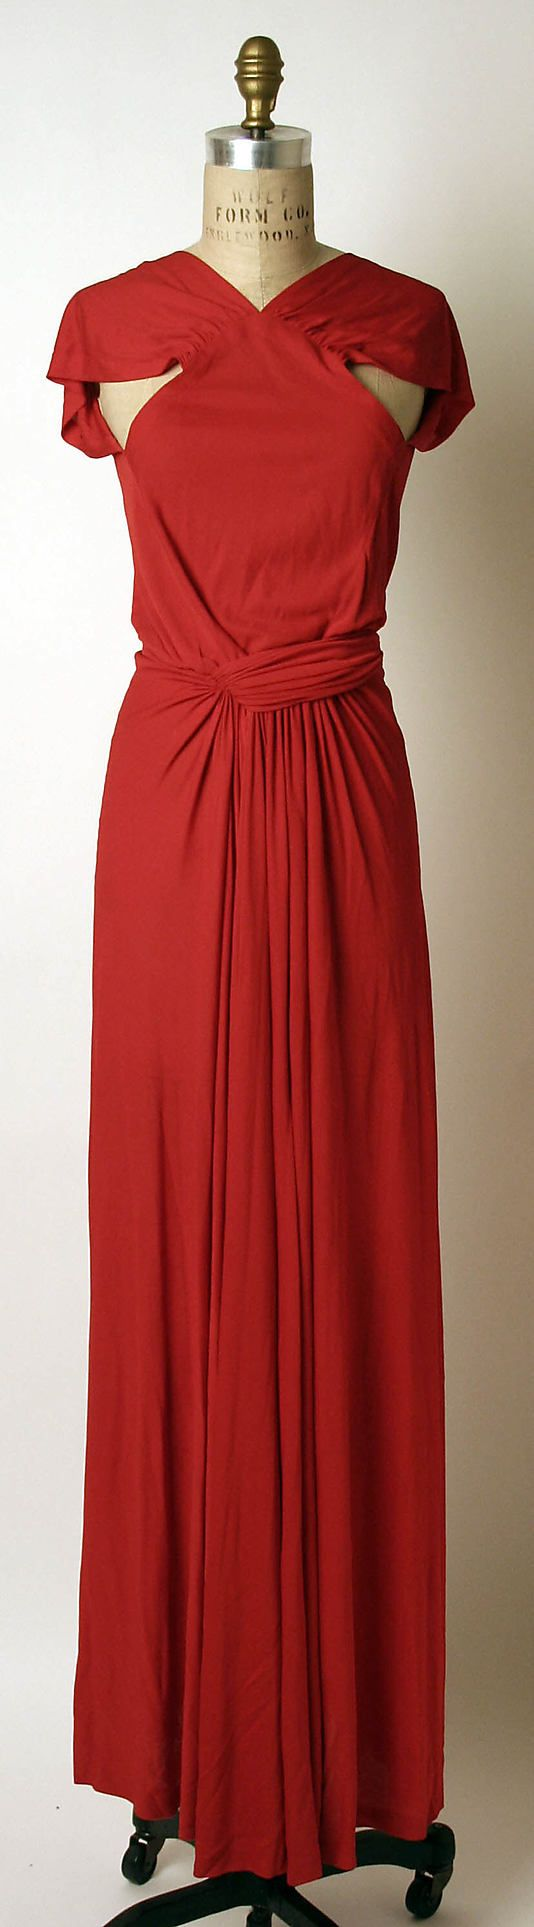 1970 Madame Gres Evening dress Metropolitan Museum of Art, NY. To learn more about this dress go to http://metmuseum.org/art/collection/search/80480?rpp=20&pg=39&ao=on&ft=dress&pos=763